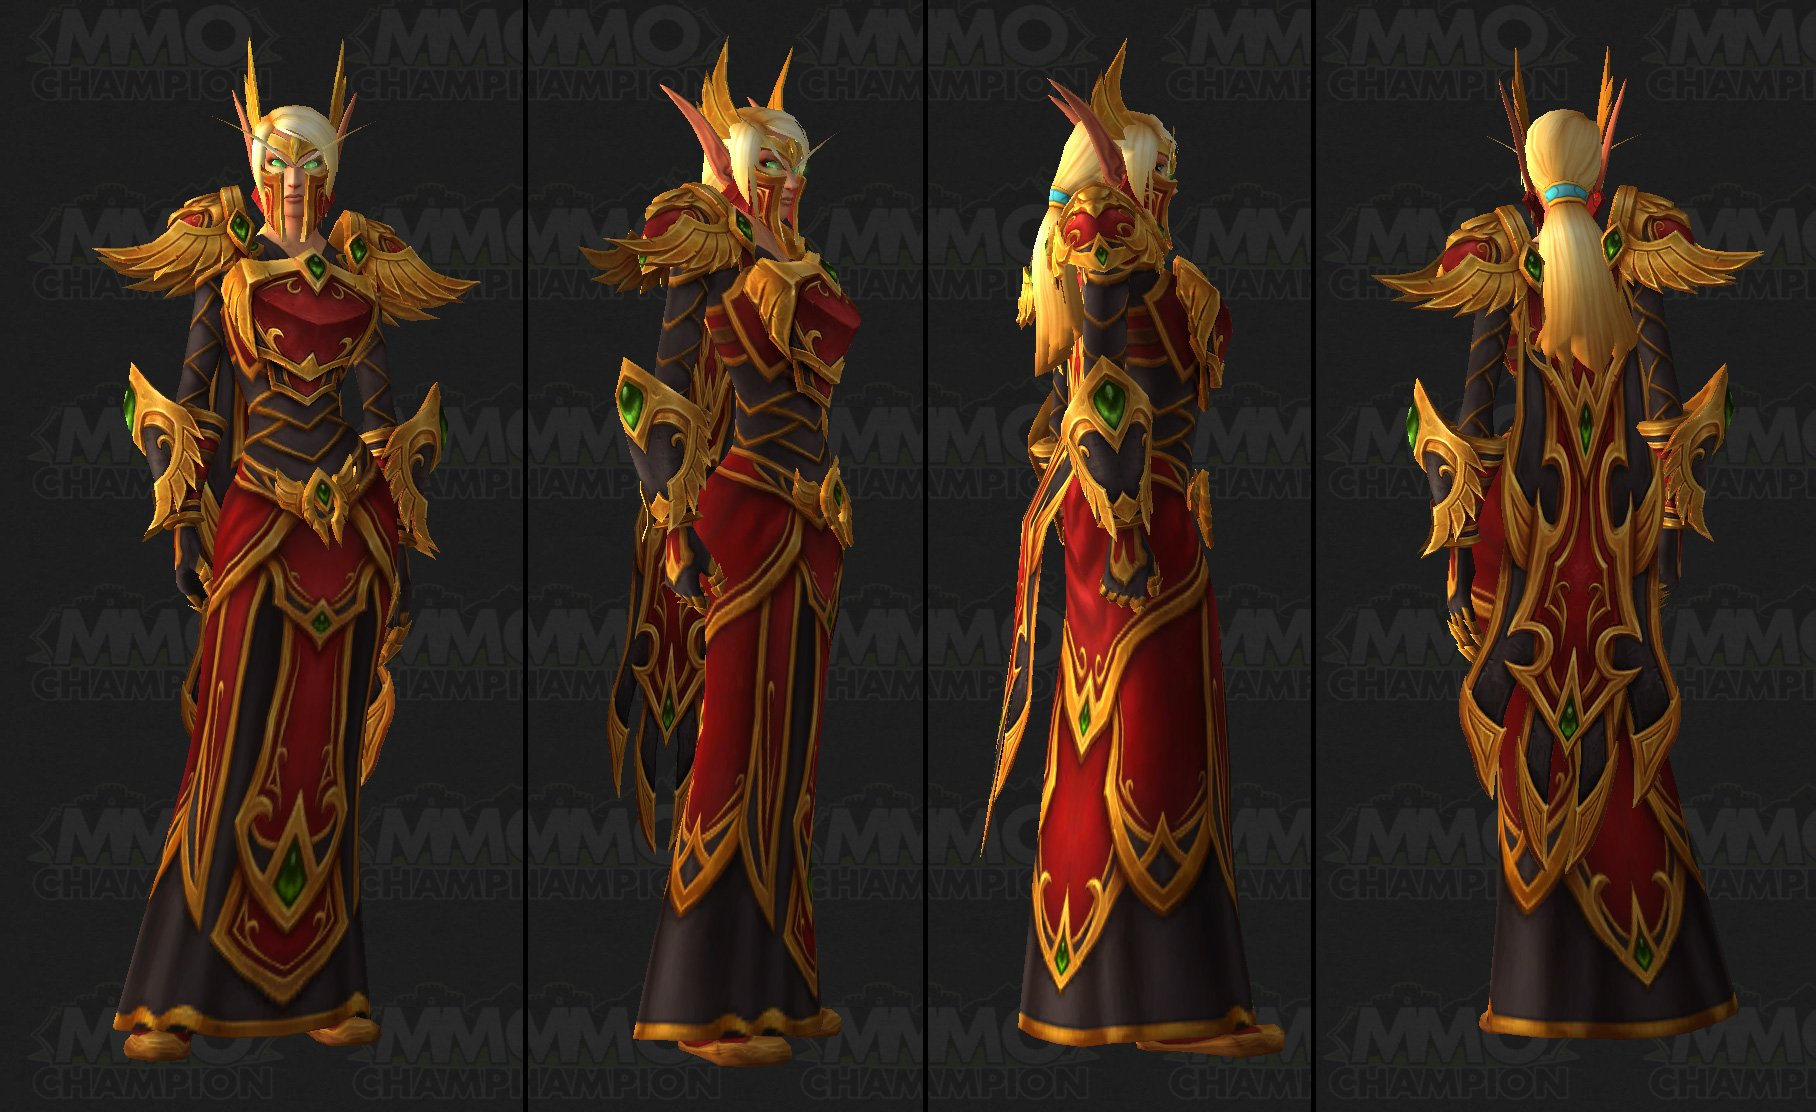 Void Elf Heritage Armor Questline : My sunshadow sisters are looking so magnificent in this armor i'm so proud for my elf.honestly, when blood elves will get the heritage armor, the horde elves will be awesome.